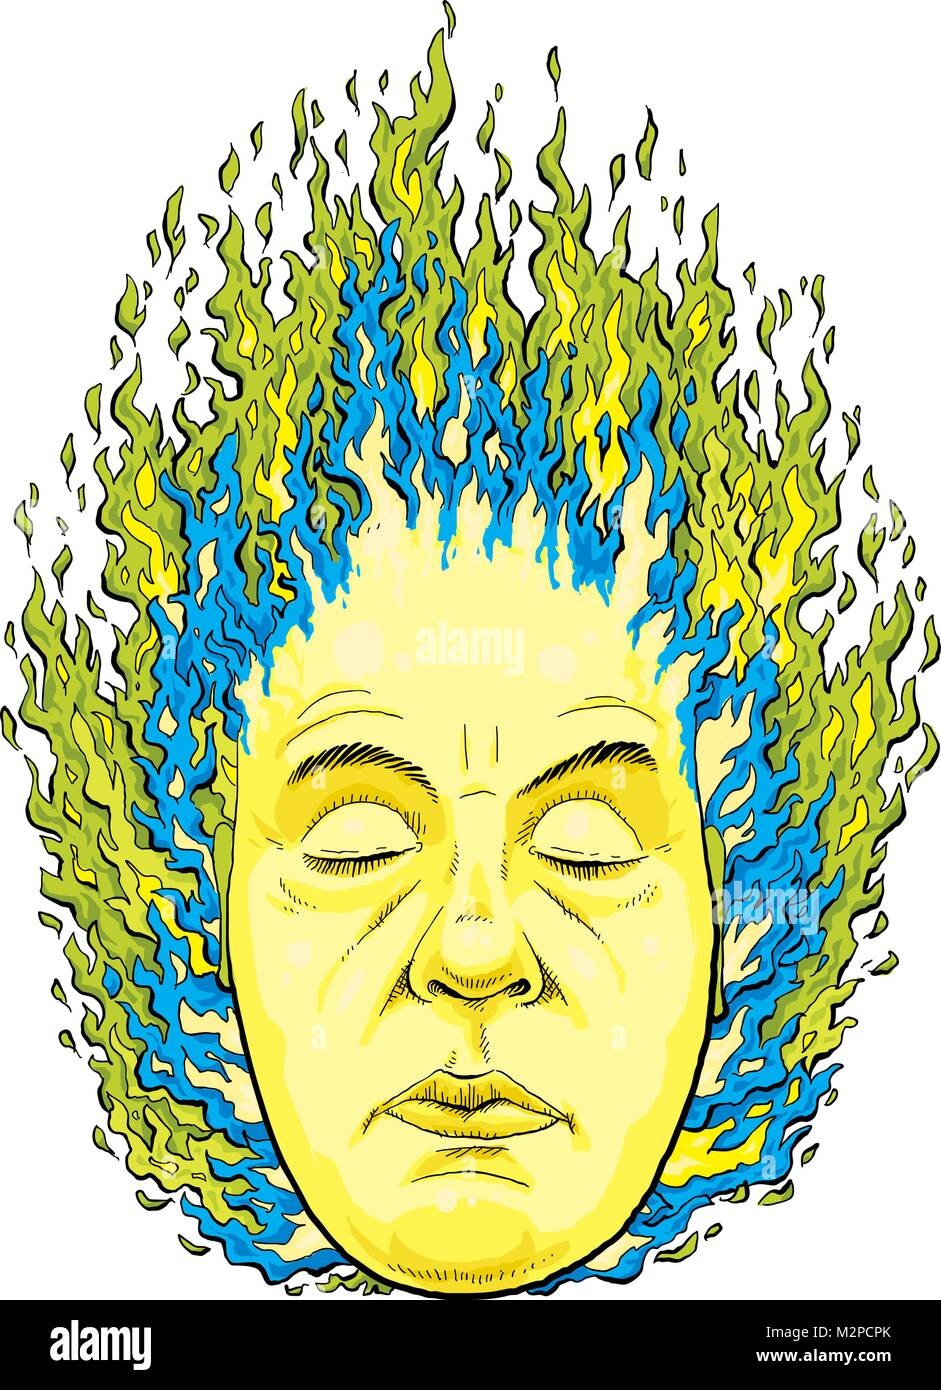 Green and blue magic fire burn brightly from the head of a mystical man. Stock Vector